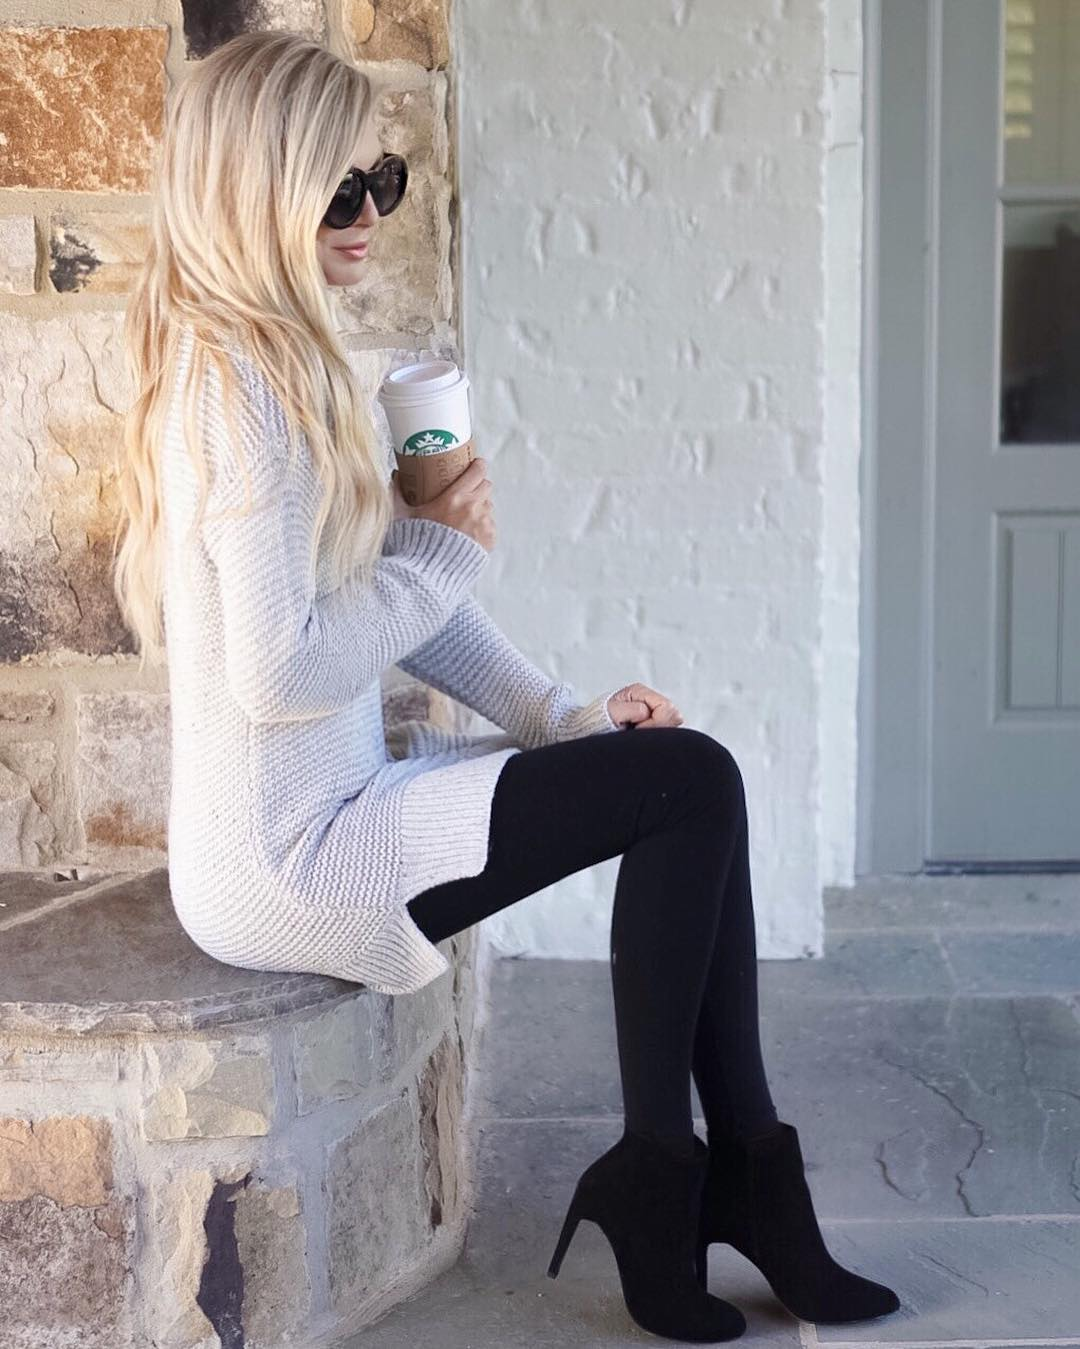 Hands down, one of the coziest things I've ever worn!! It's super long & oversized + 40% off!! Hope y'all had a fab Monday!! http://liketk.it/2poX9 #fallfashion #fall #wiw #ootd #liketkit #ltksaleslert #ltkunder50